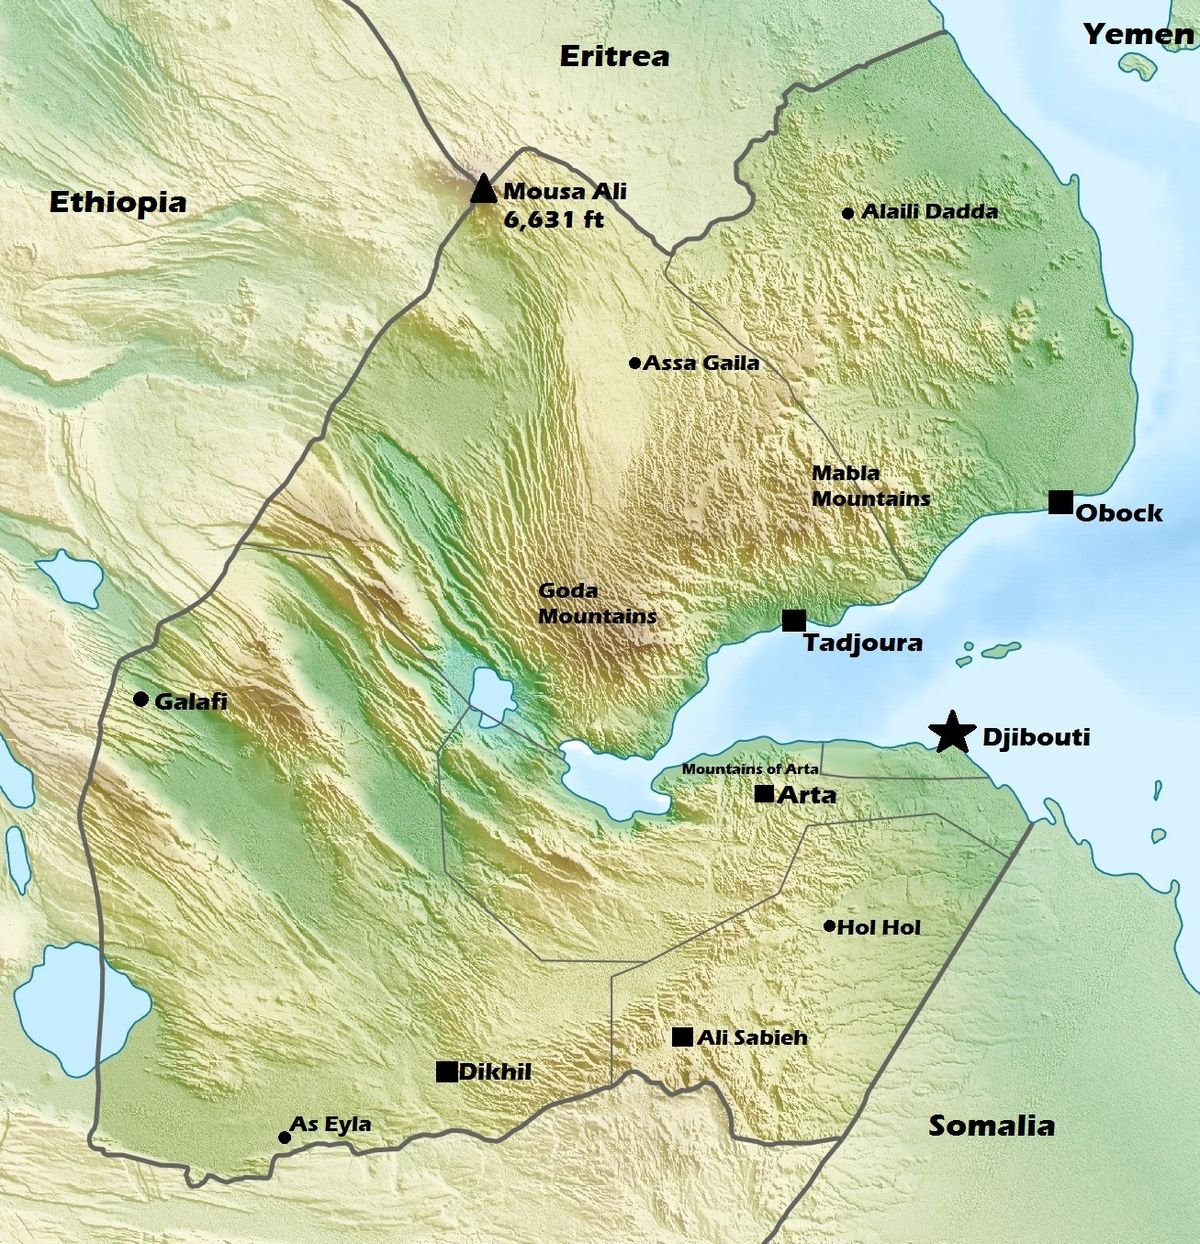 a geography of djibouti Djibouti's economy is based mainly on its role as a trading center for goods traveling to and from africa on the red sea and indian ocean it has a modern port and a railroad connection to addis ababa , the capital of ethiopia.